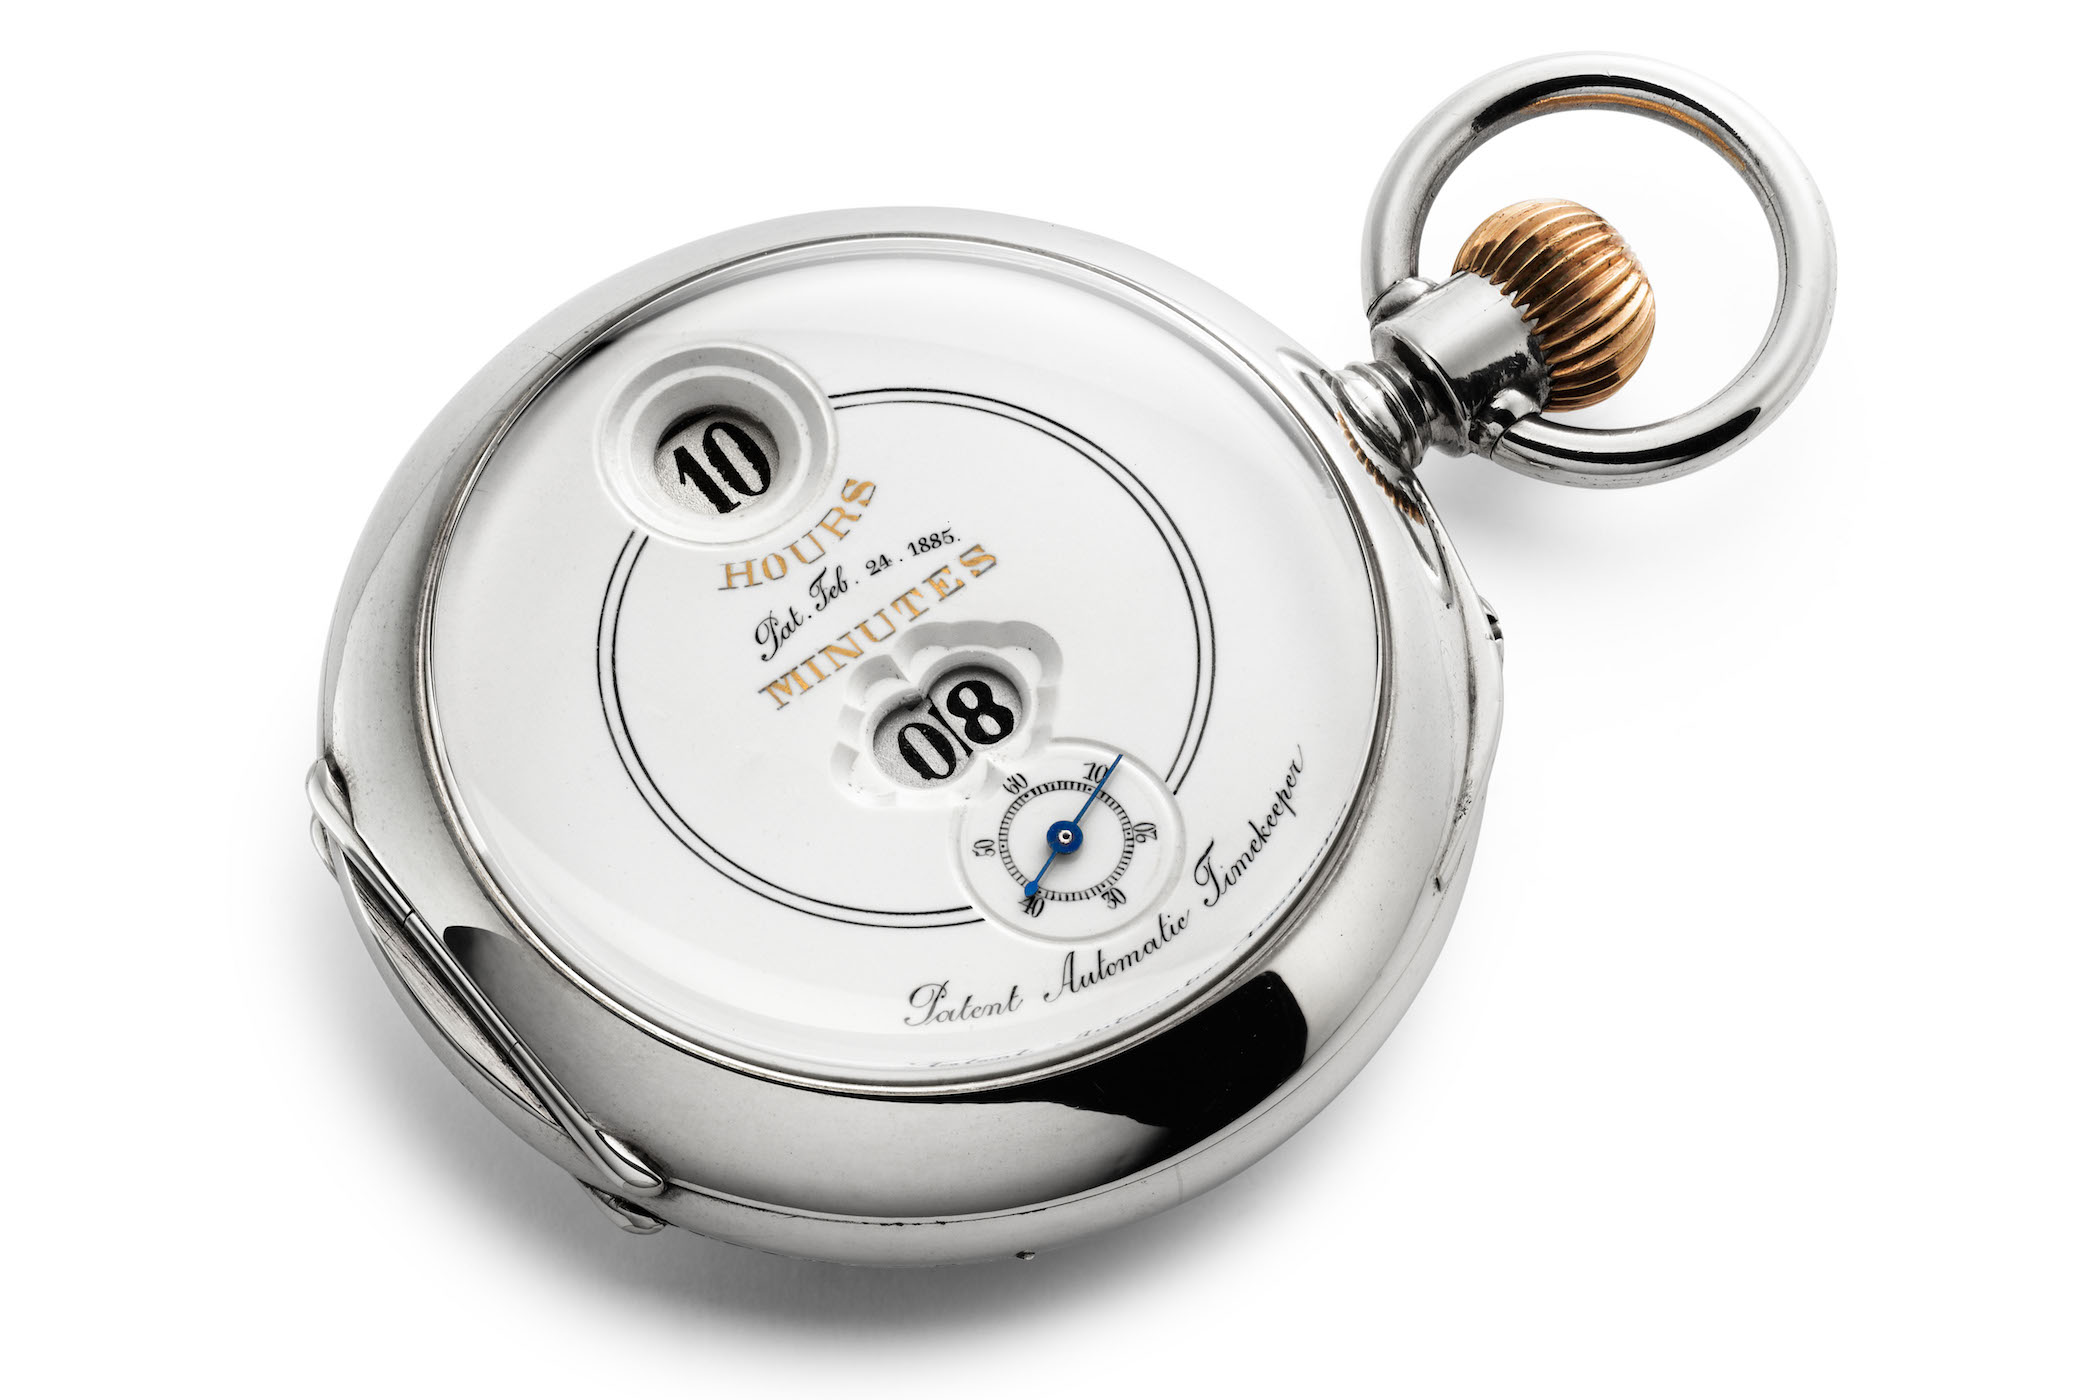 IWC pallweber pocket watch